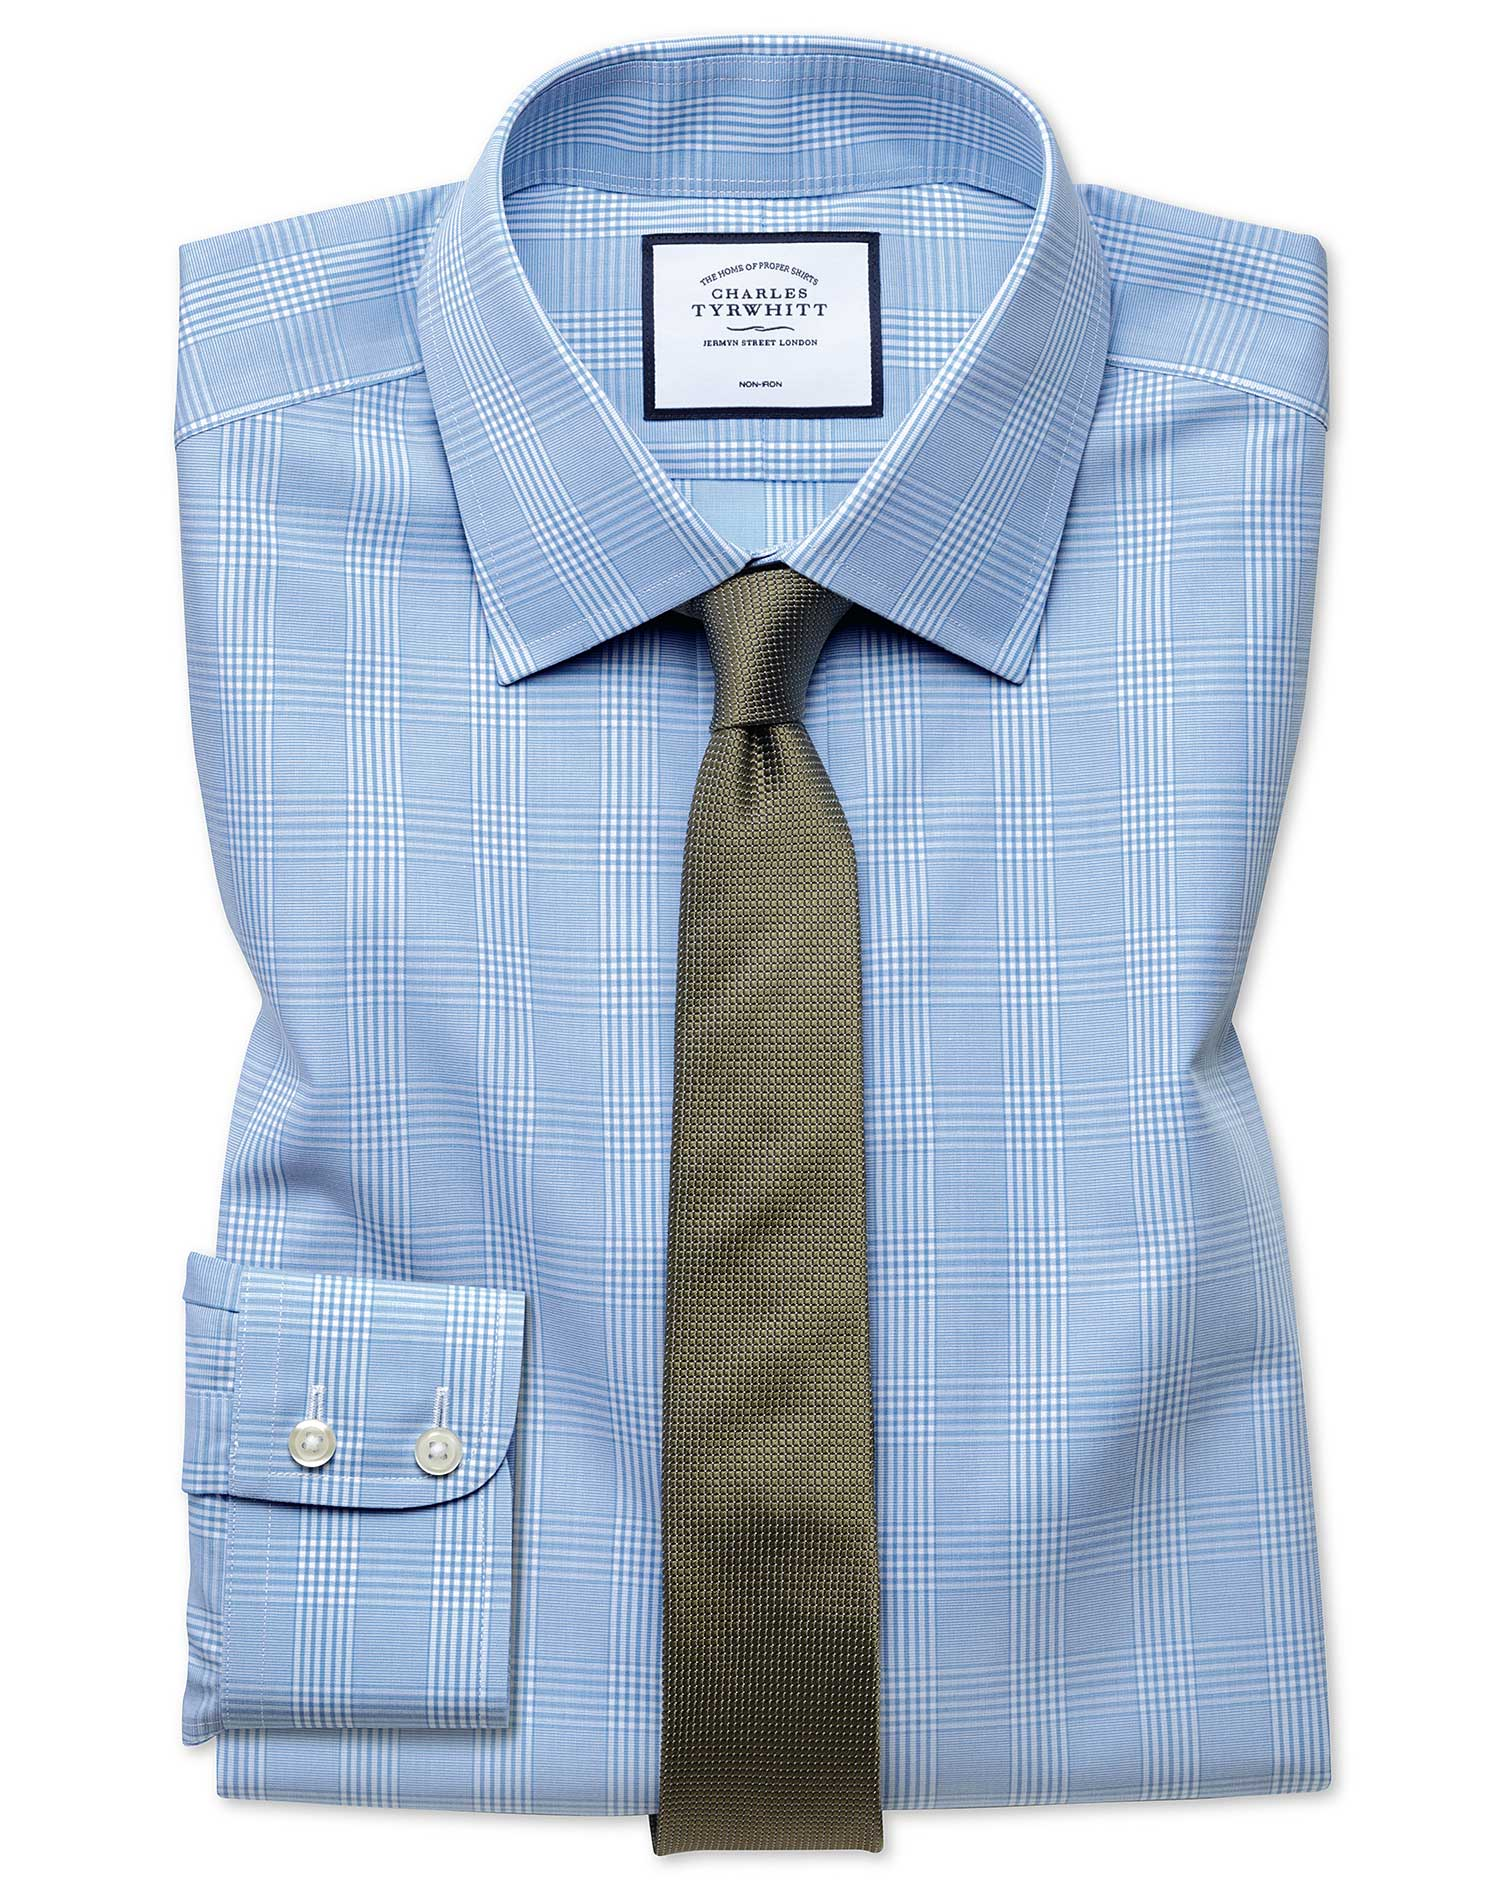 Extra Slim Fit Non-Iron Prince Of Wales Sky Blue Cotton Formal Shirt Single Cuff Size 17/37 by Charl